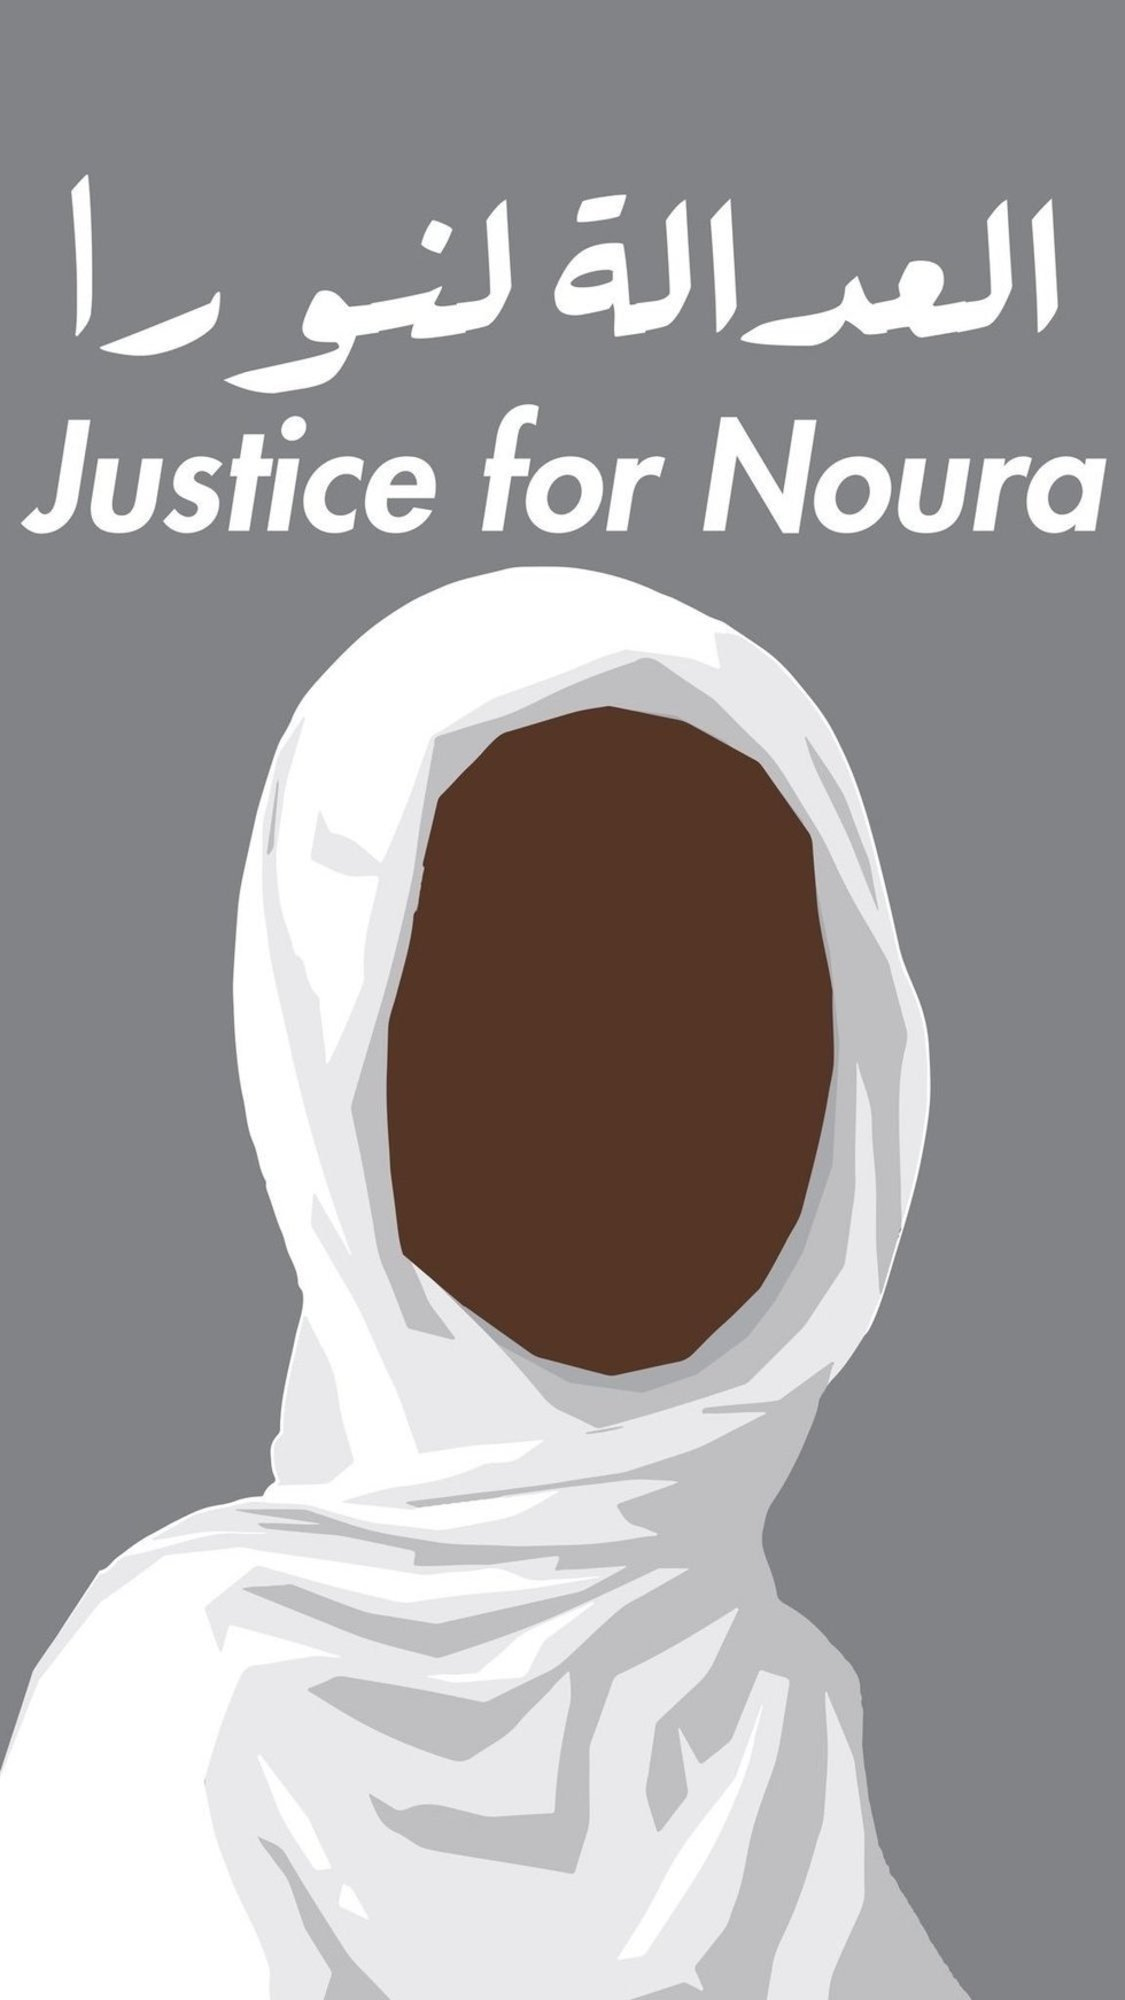 This is the photo for the 'Justice for Noura' campaign that is circulating on social media as well as the poster image for the petition on change.org in support of her.